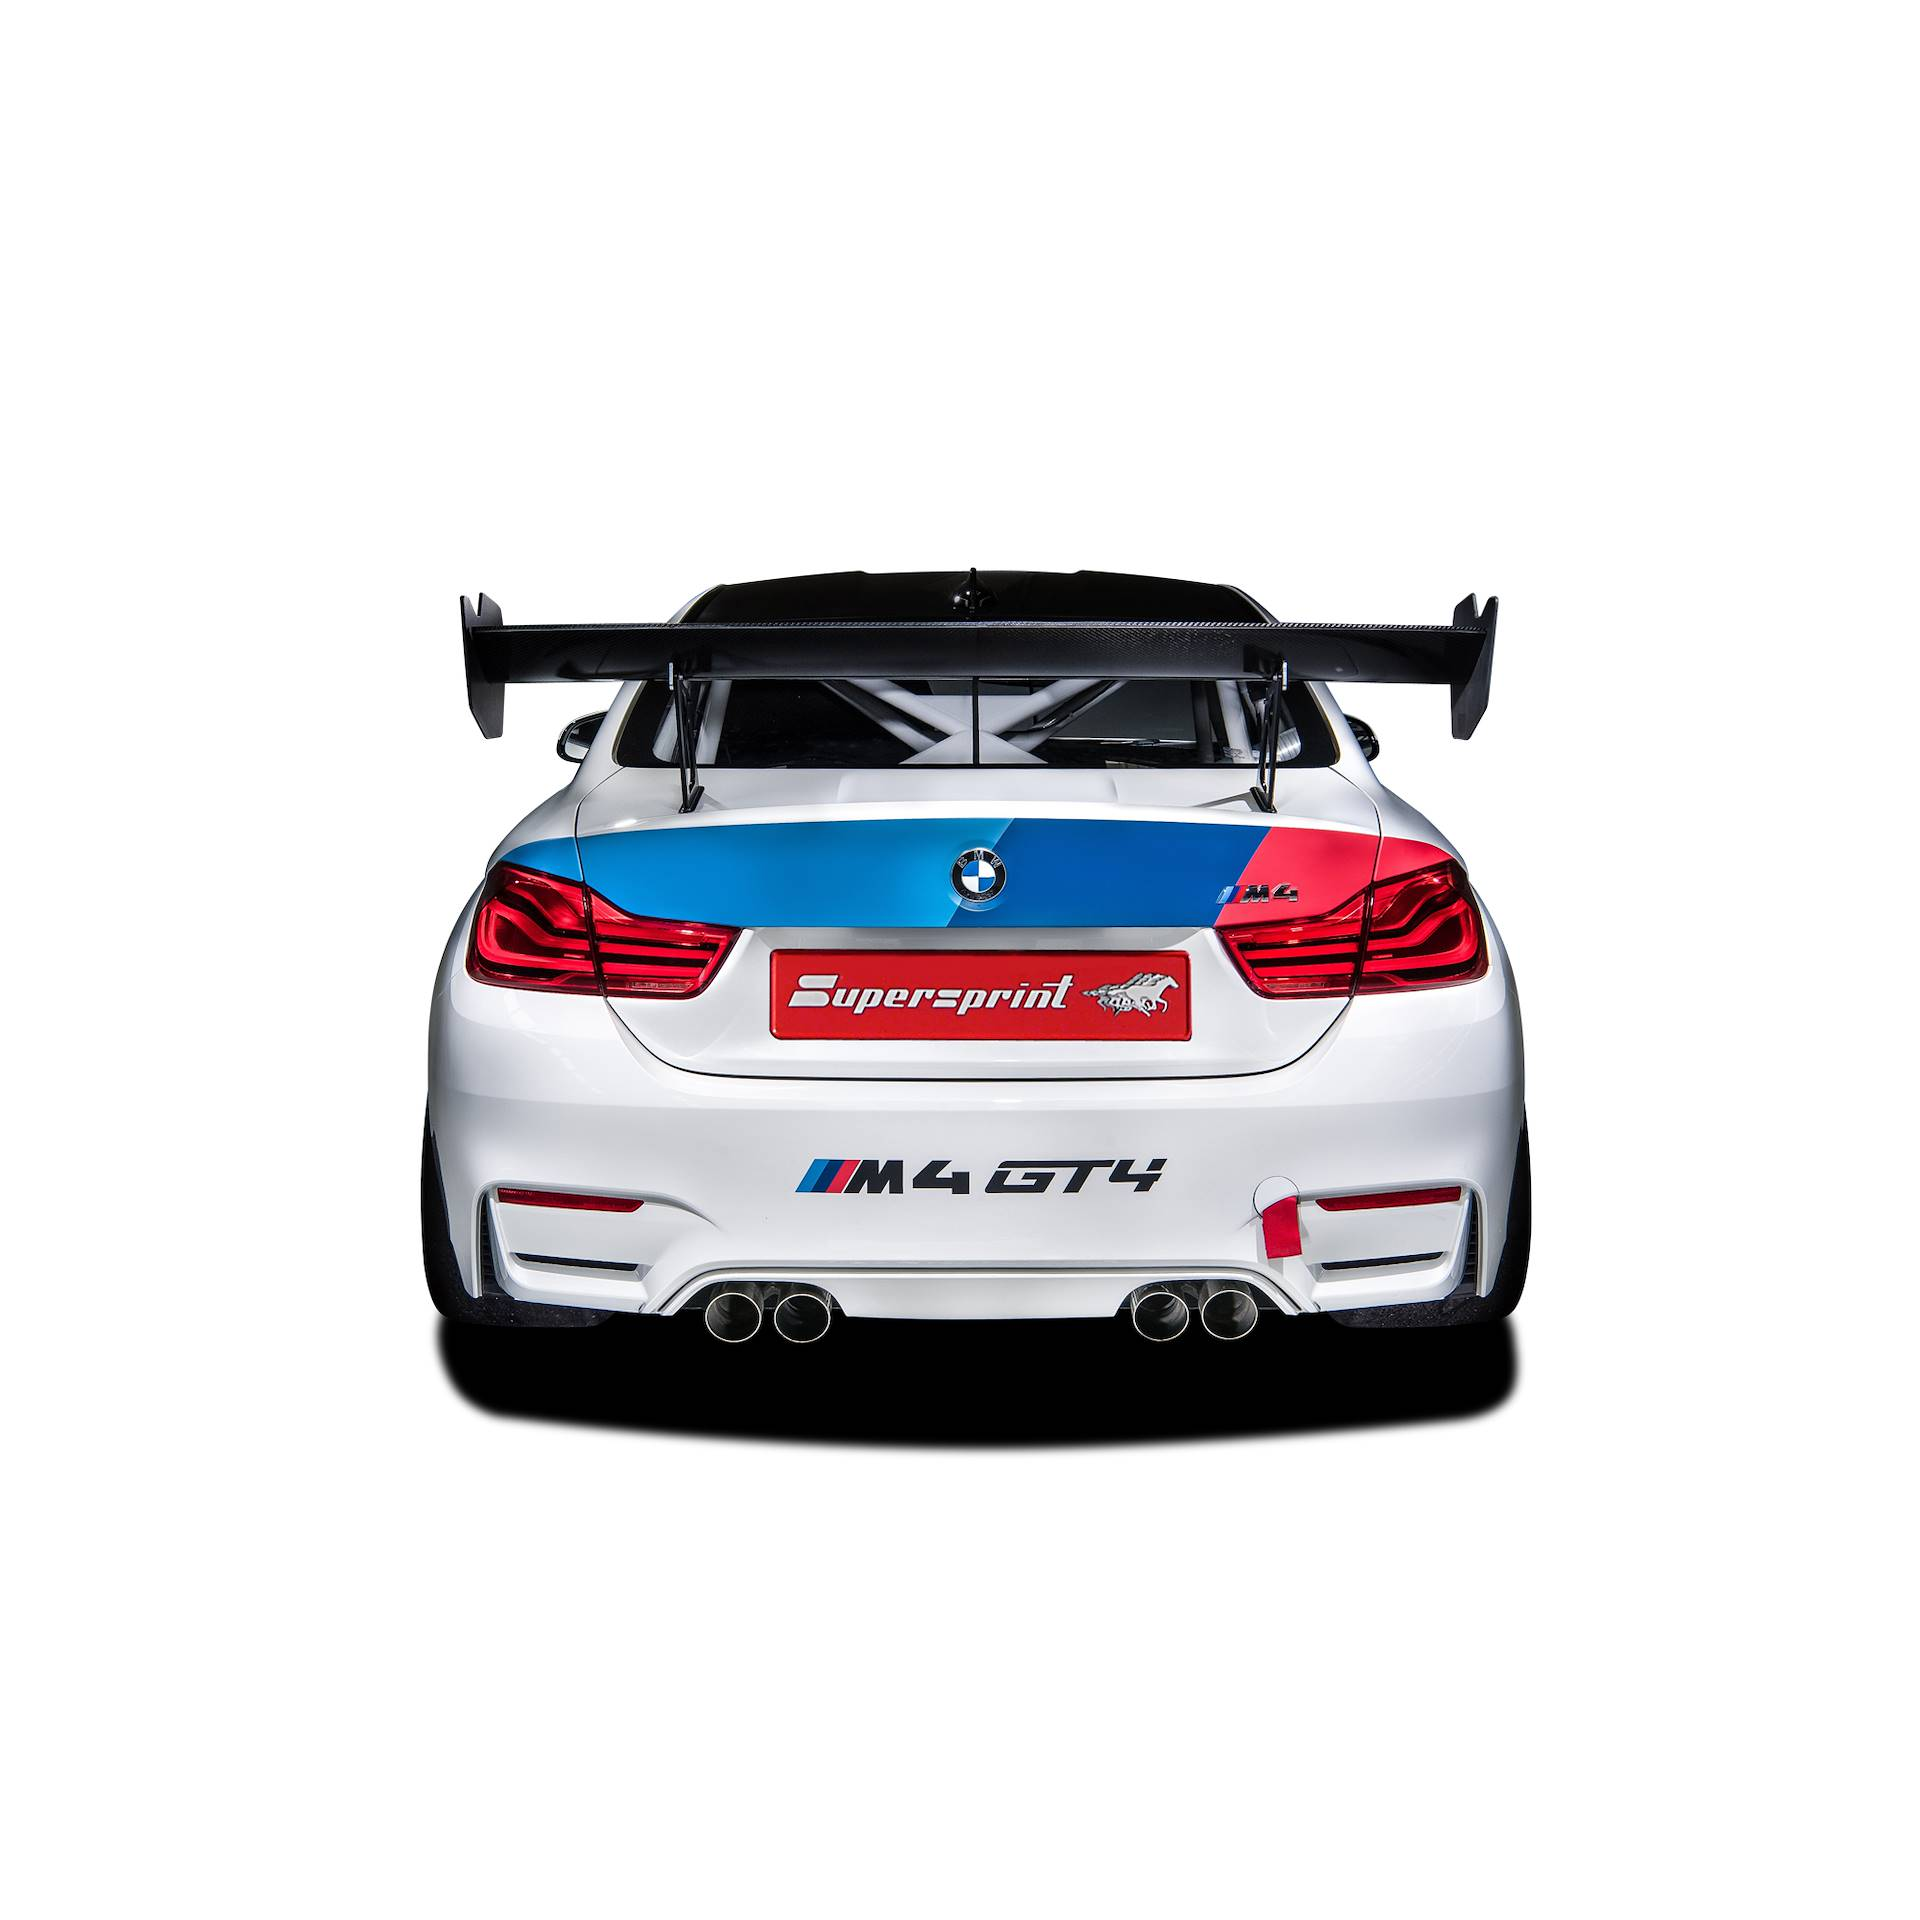 Performance Sport Exhaust For BMW F82 M4 GT4, BMW F82 M4